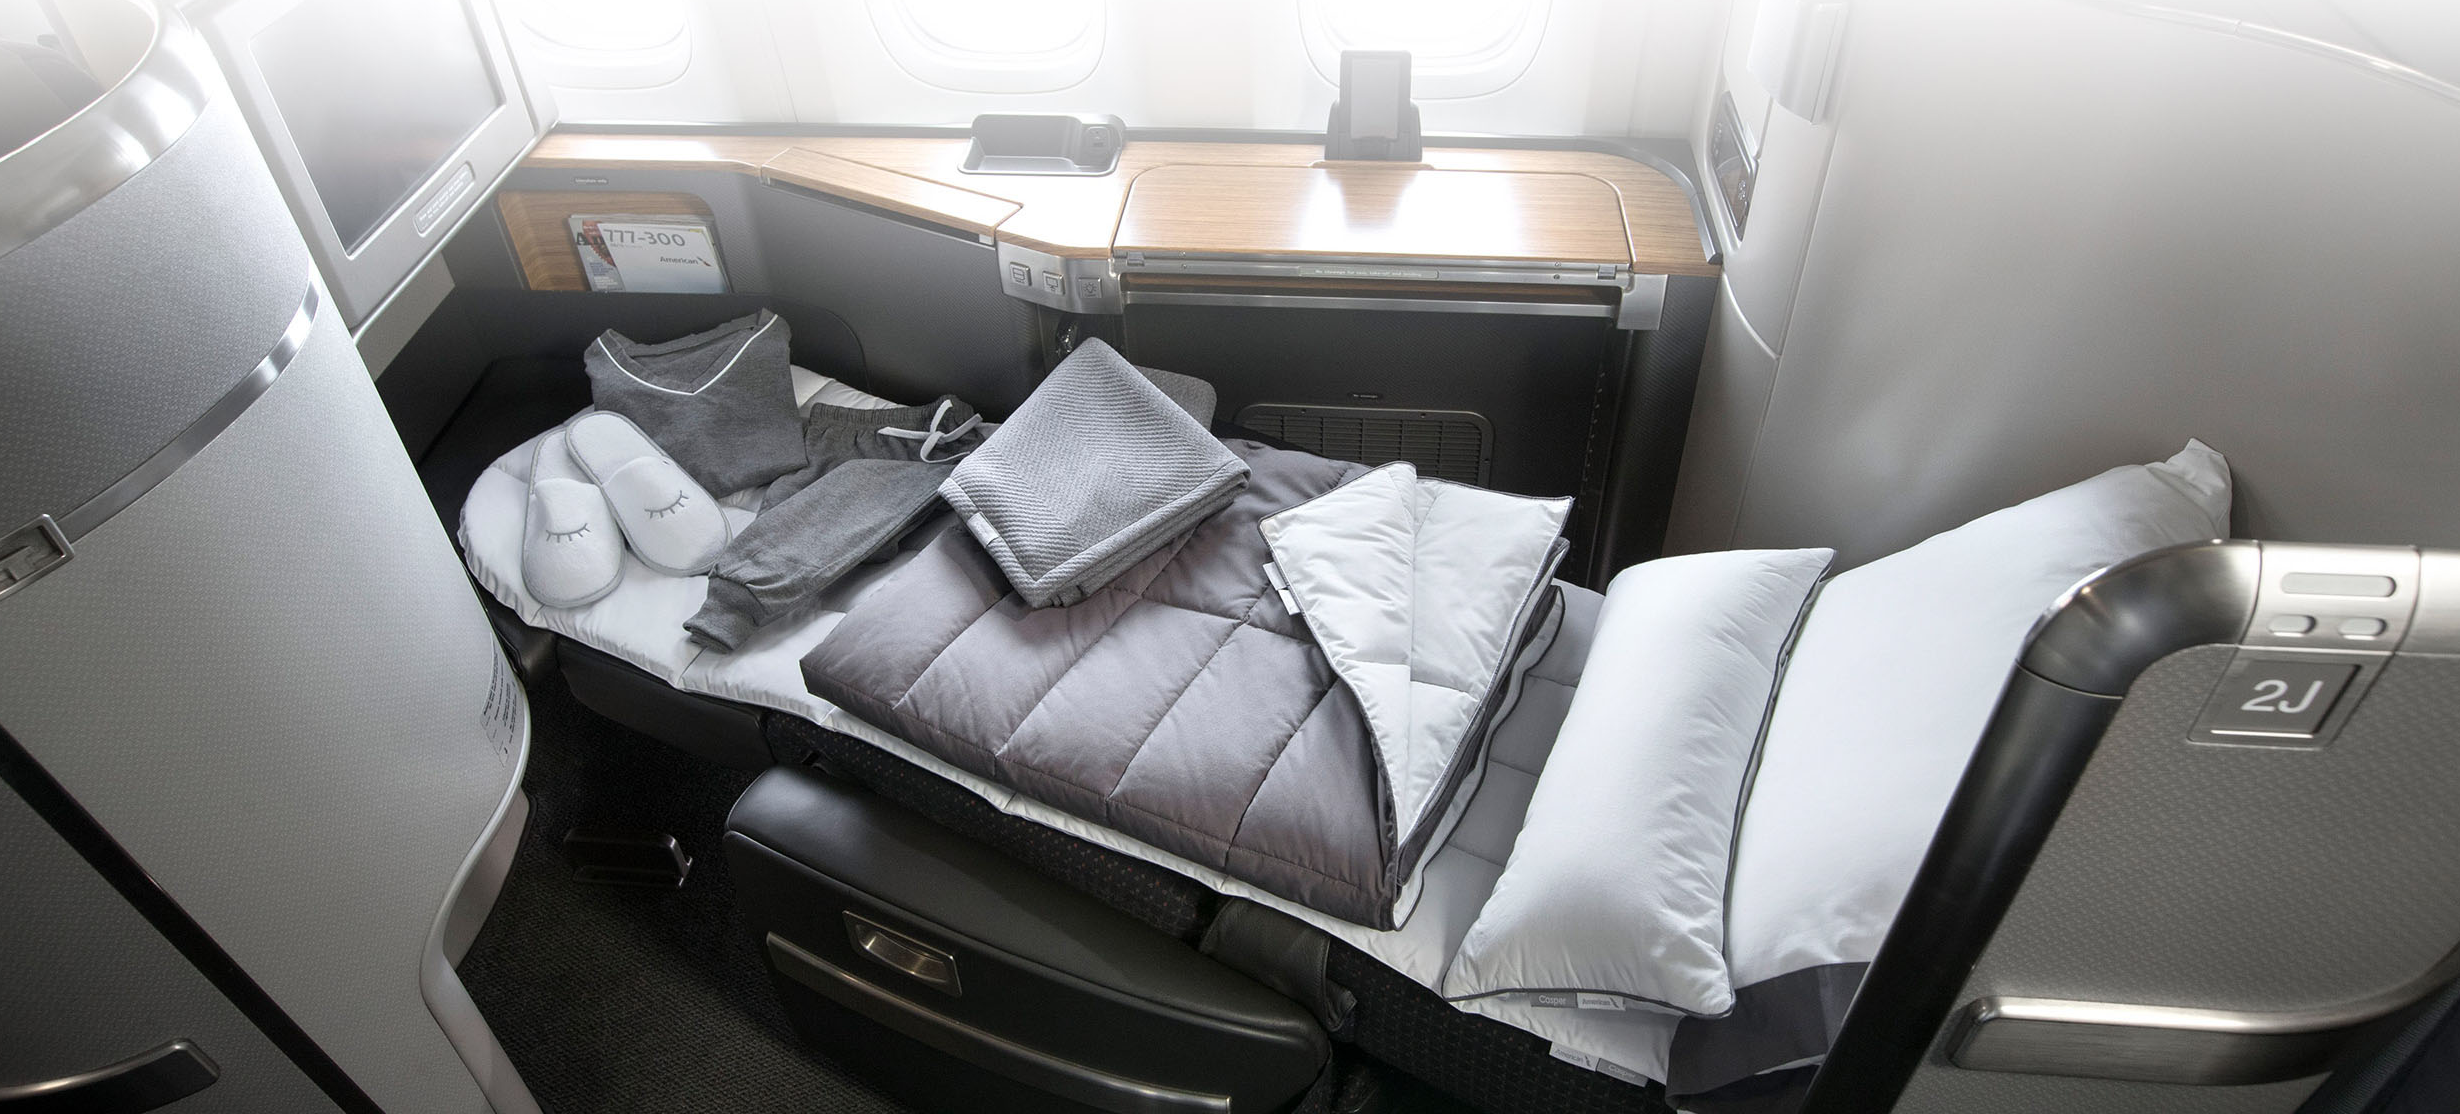 American Executive Platinum systemwide upgrades